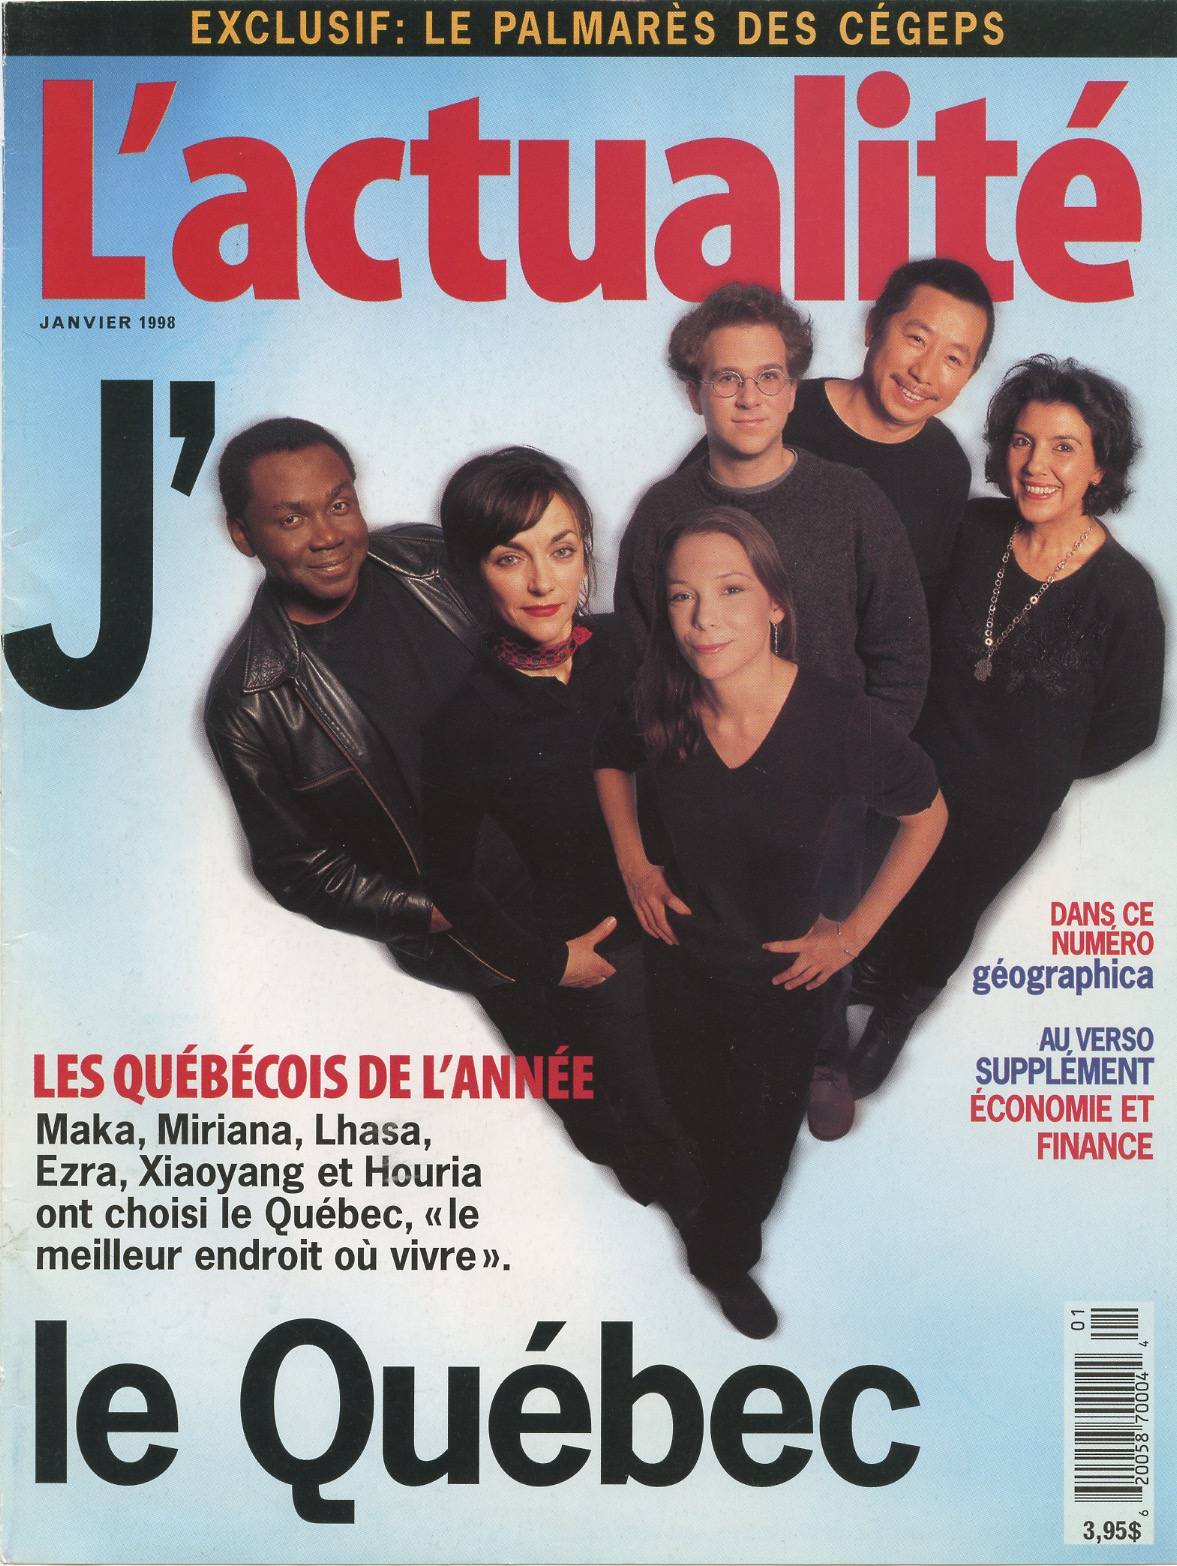 Quebecer of the Year - 1998 - L'actualité